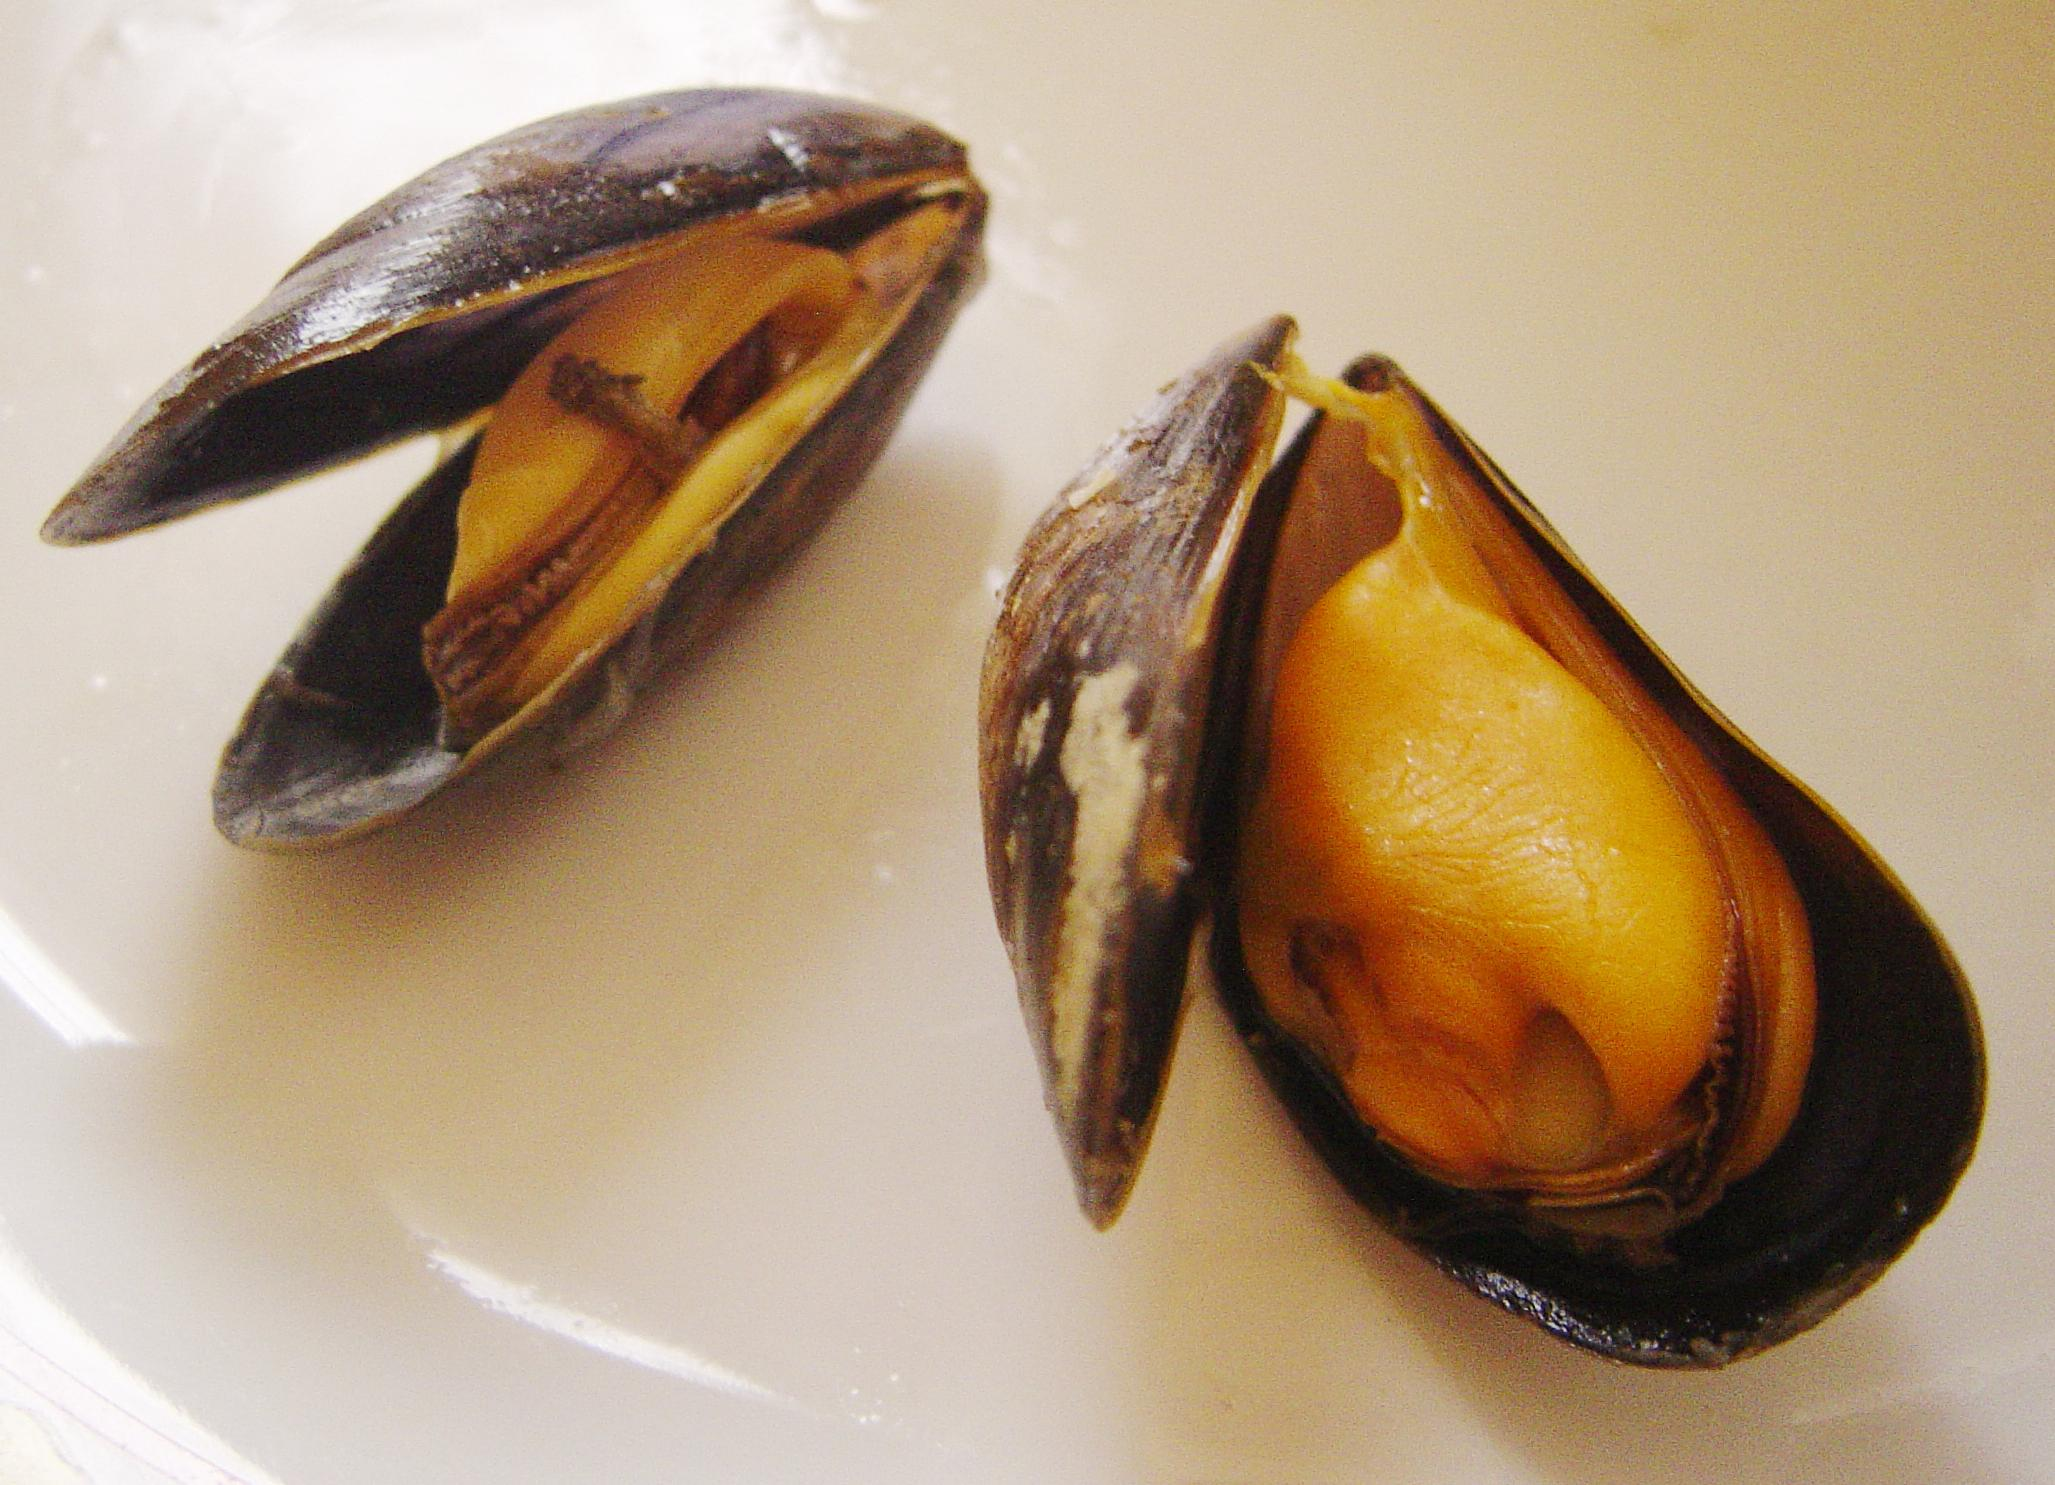 File:Cooked_mussels_DSC09244.JPG